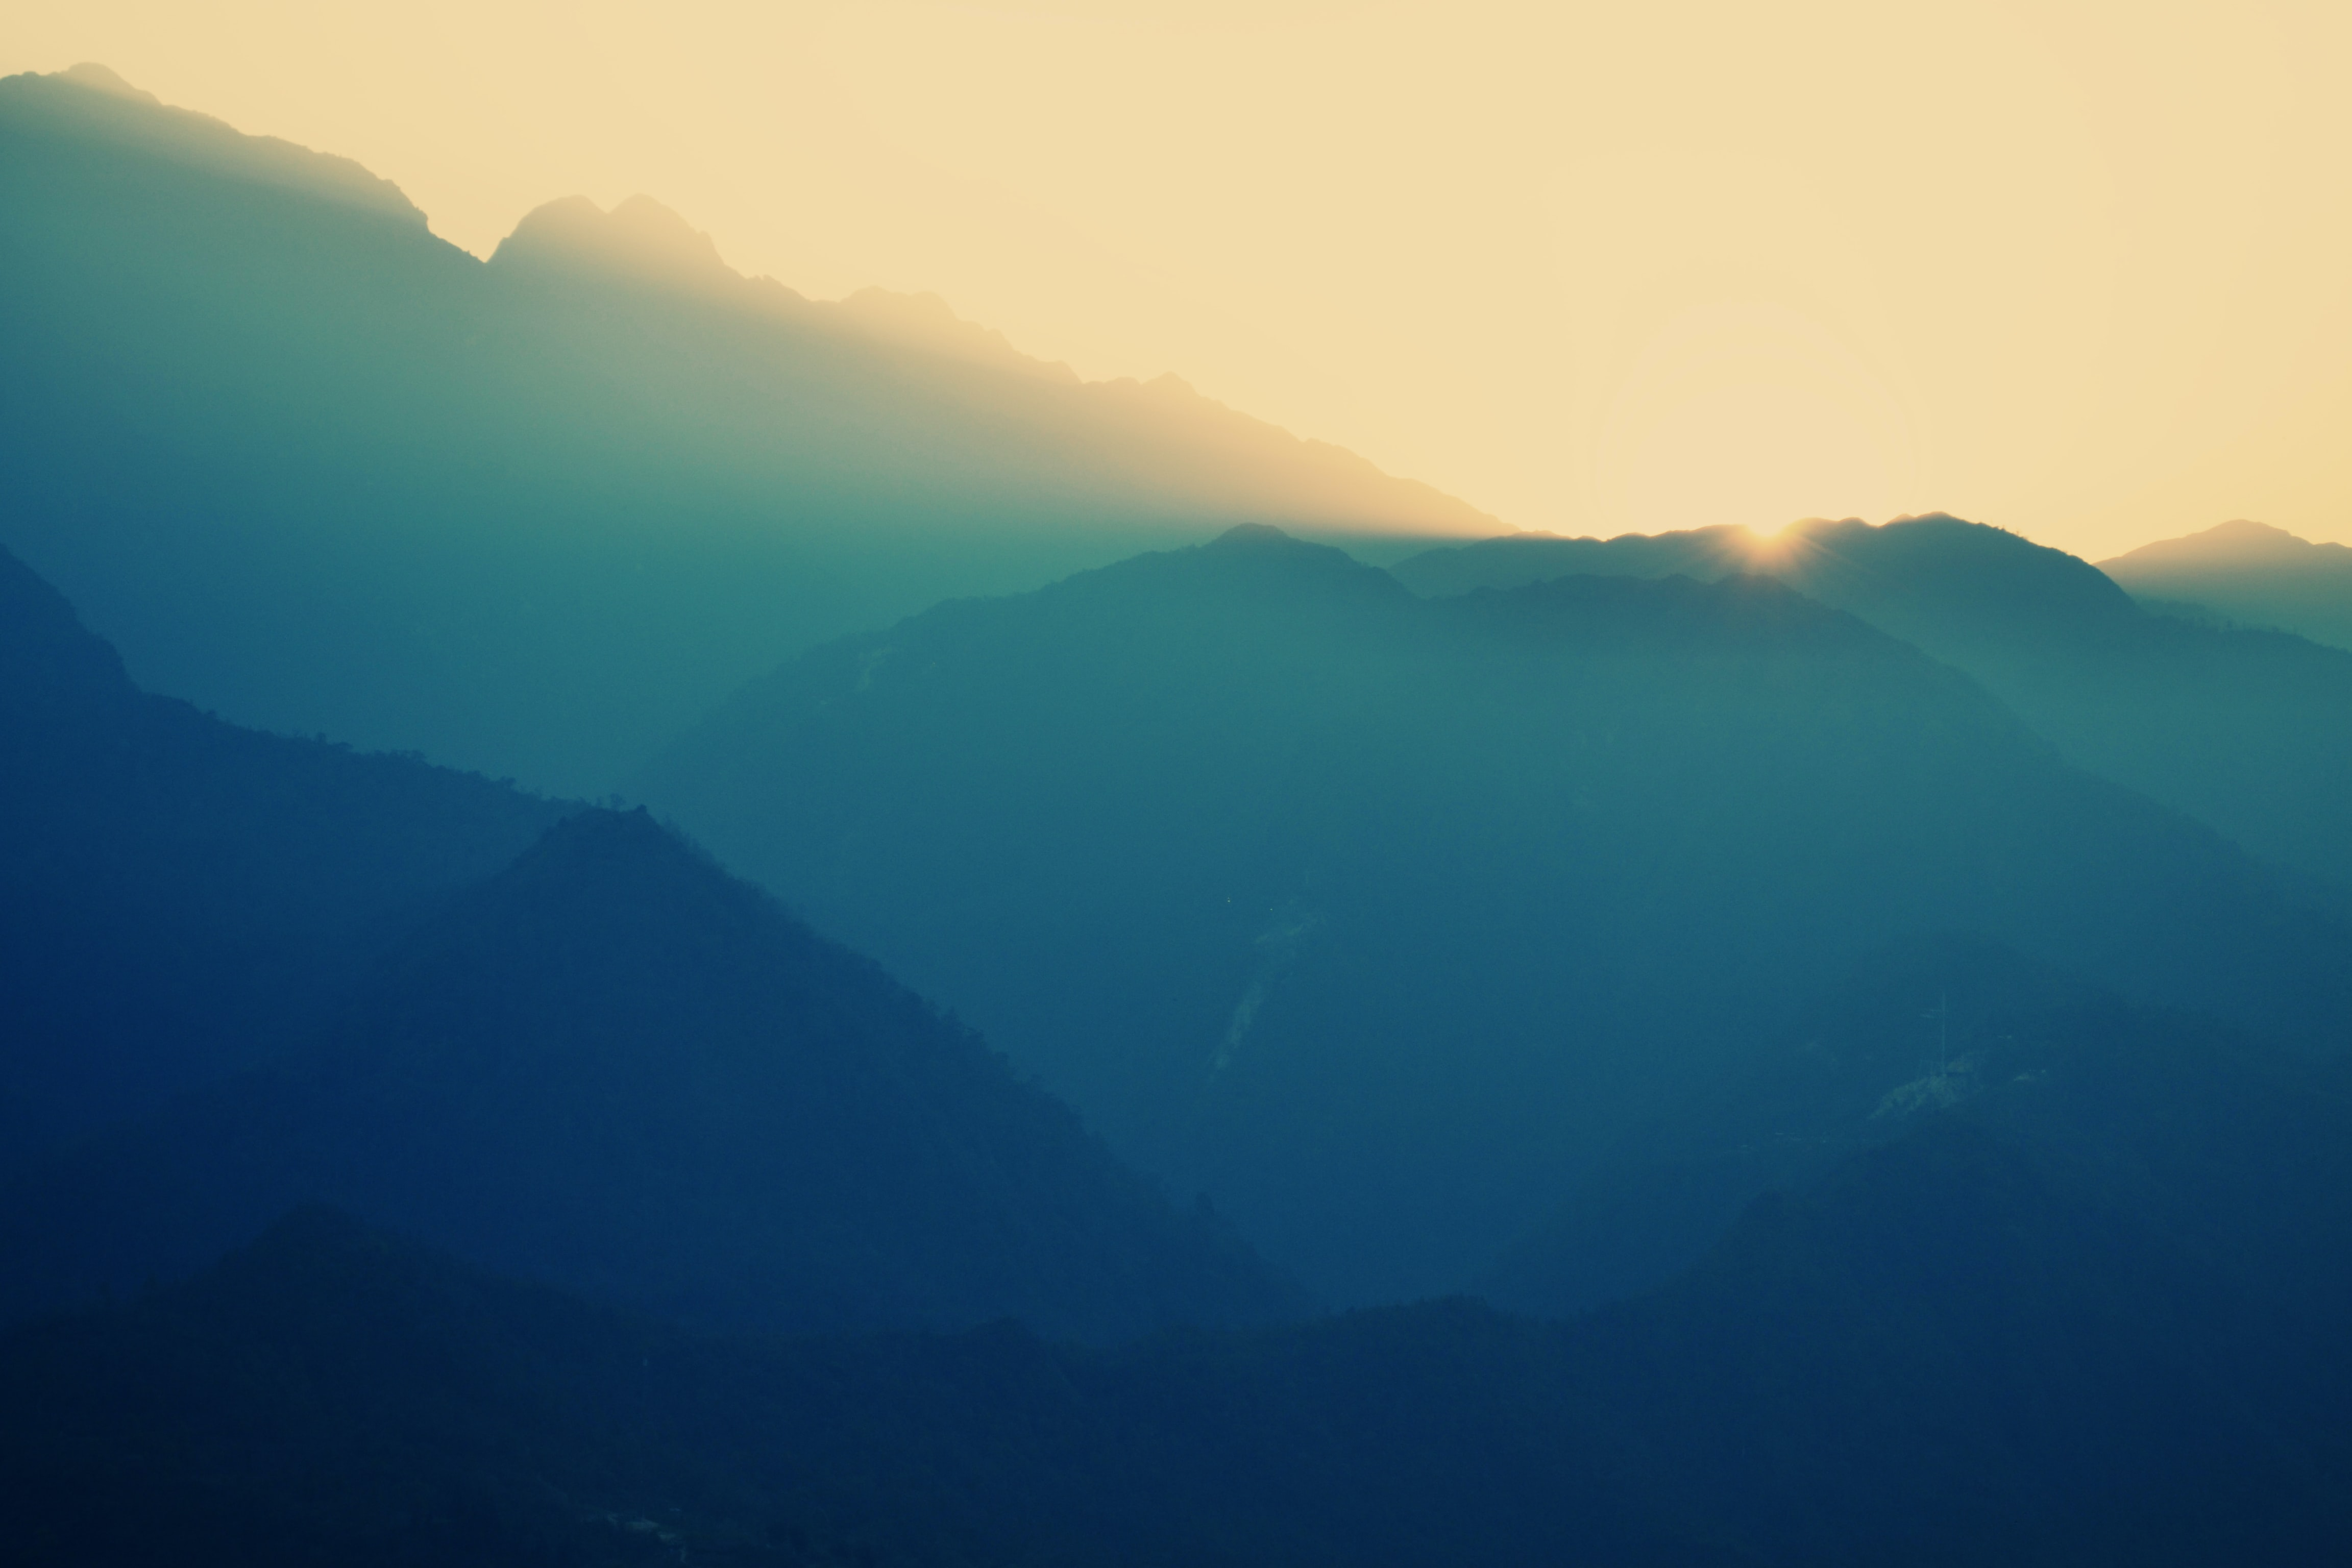 shallow focus photography of mountain